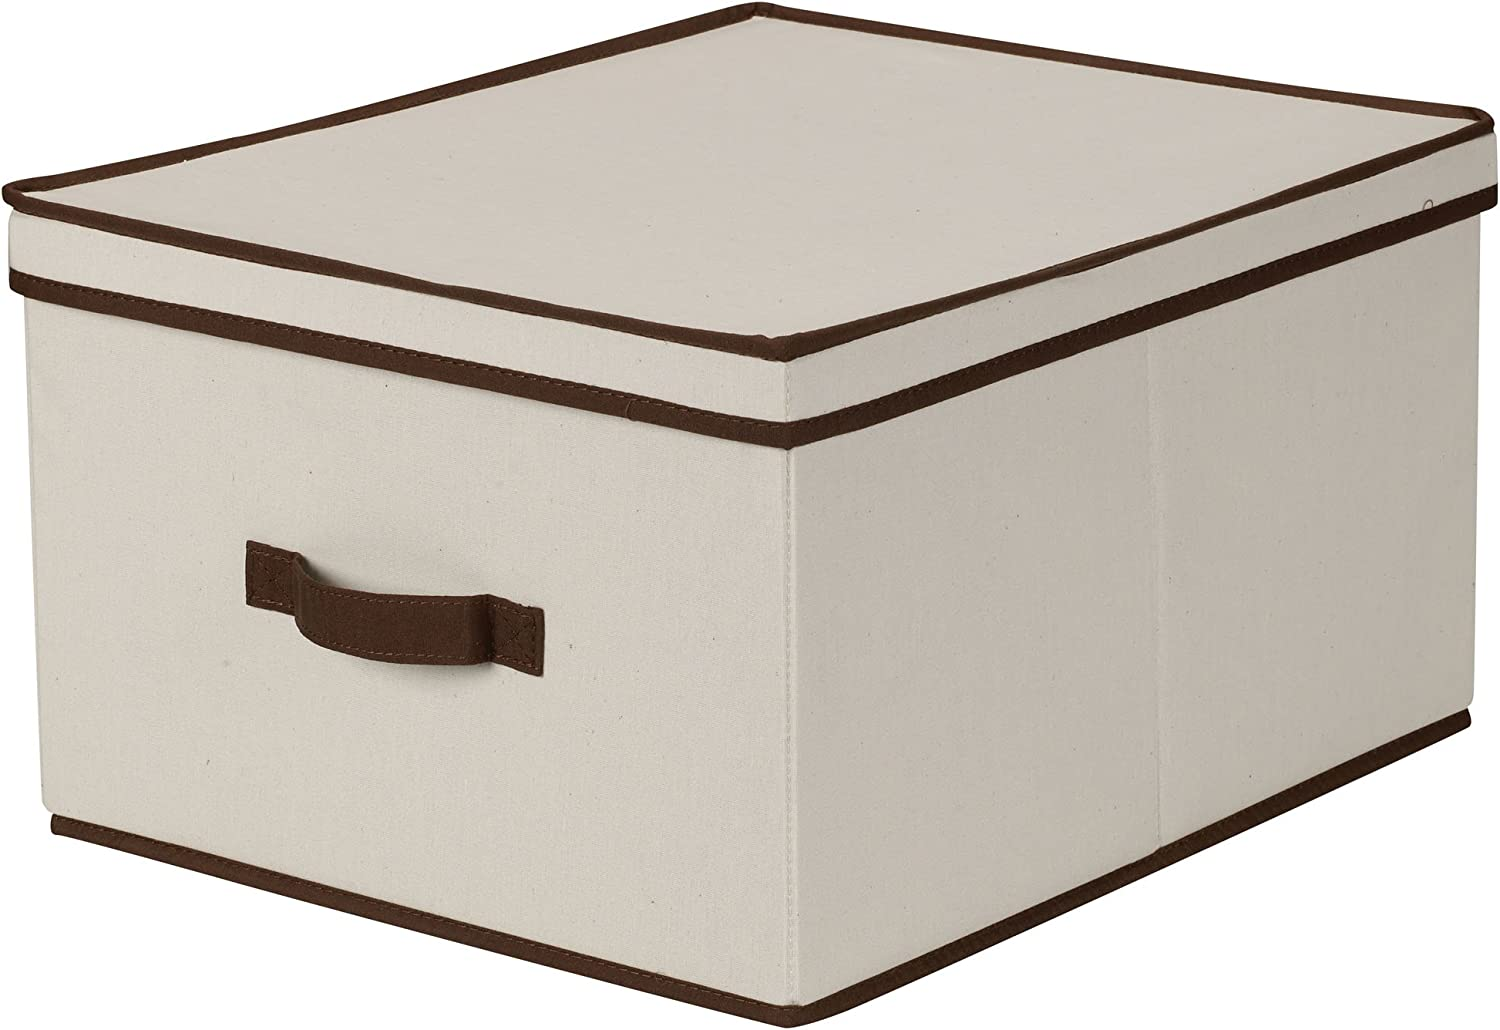 Amazon Com Household Essentials 515 Storage Box With Lid And Handle Natural Beige Canvas With Brown Trim Jumbo Home Kitchen